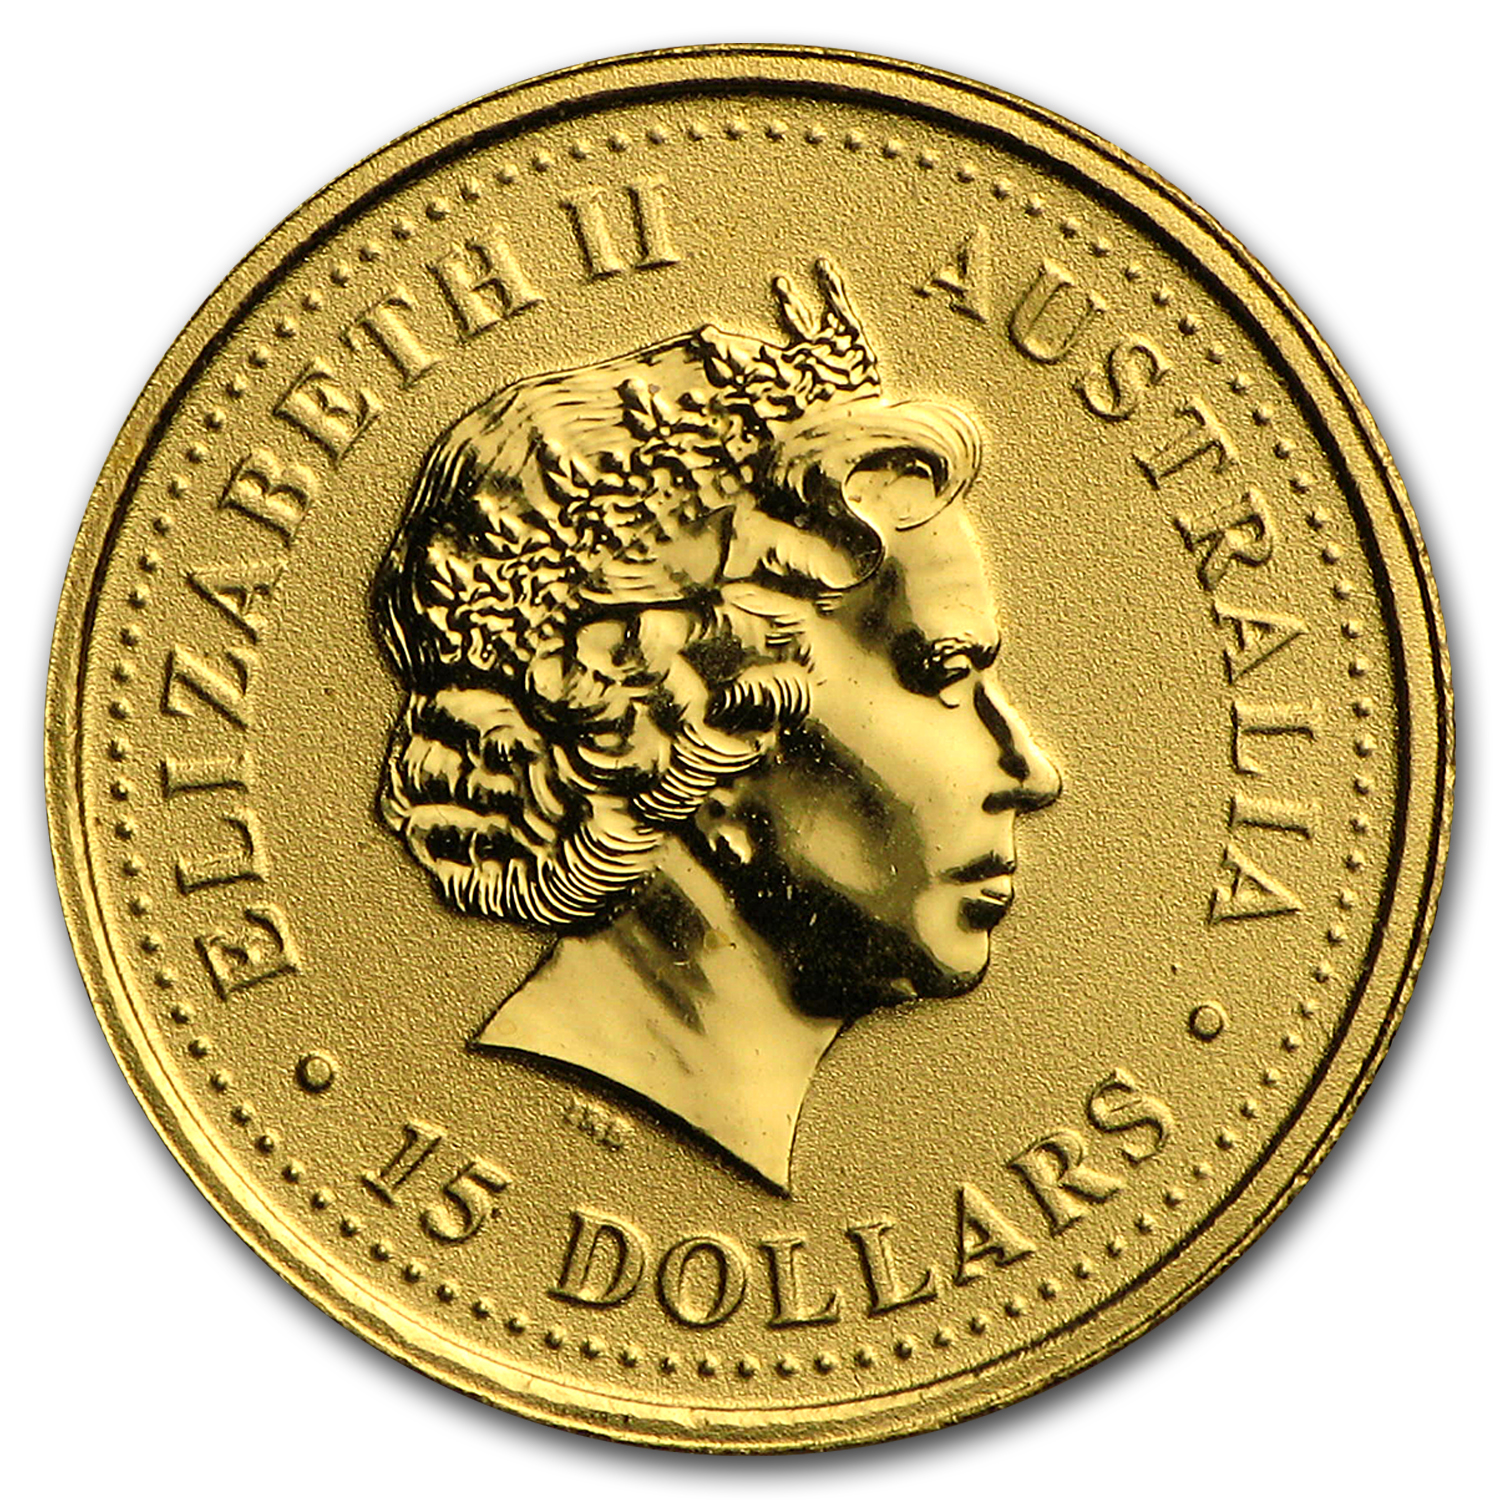 2000 Australia 1/10 oz Gold Nugget